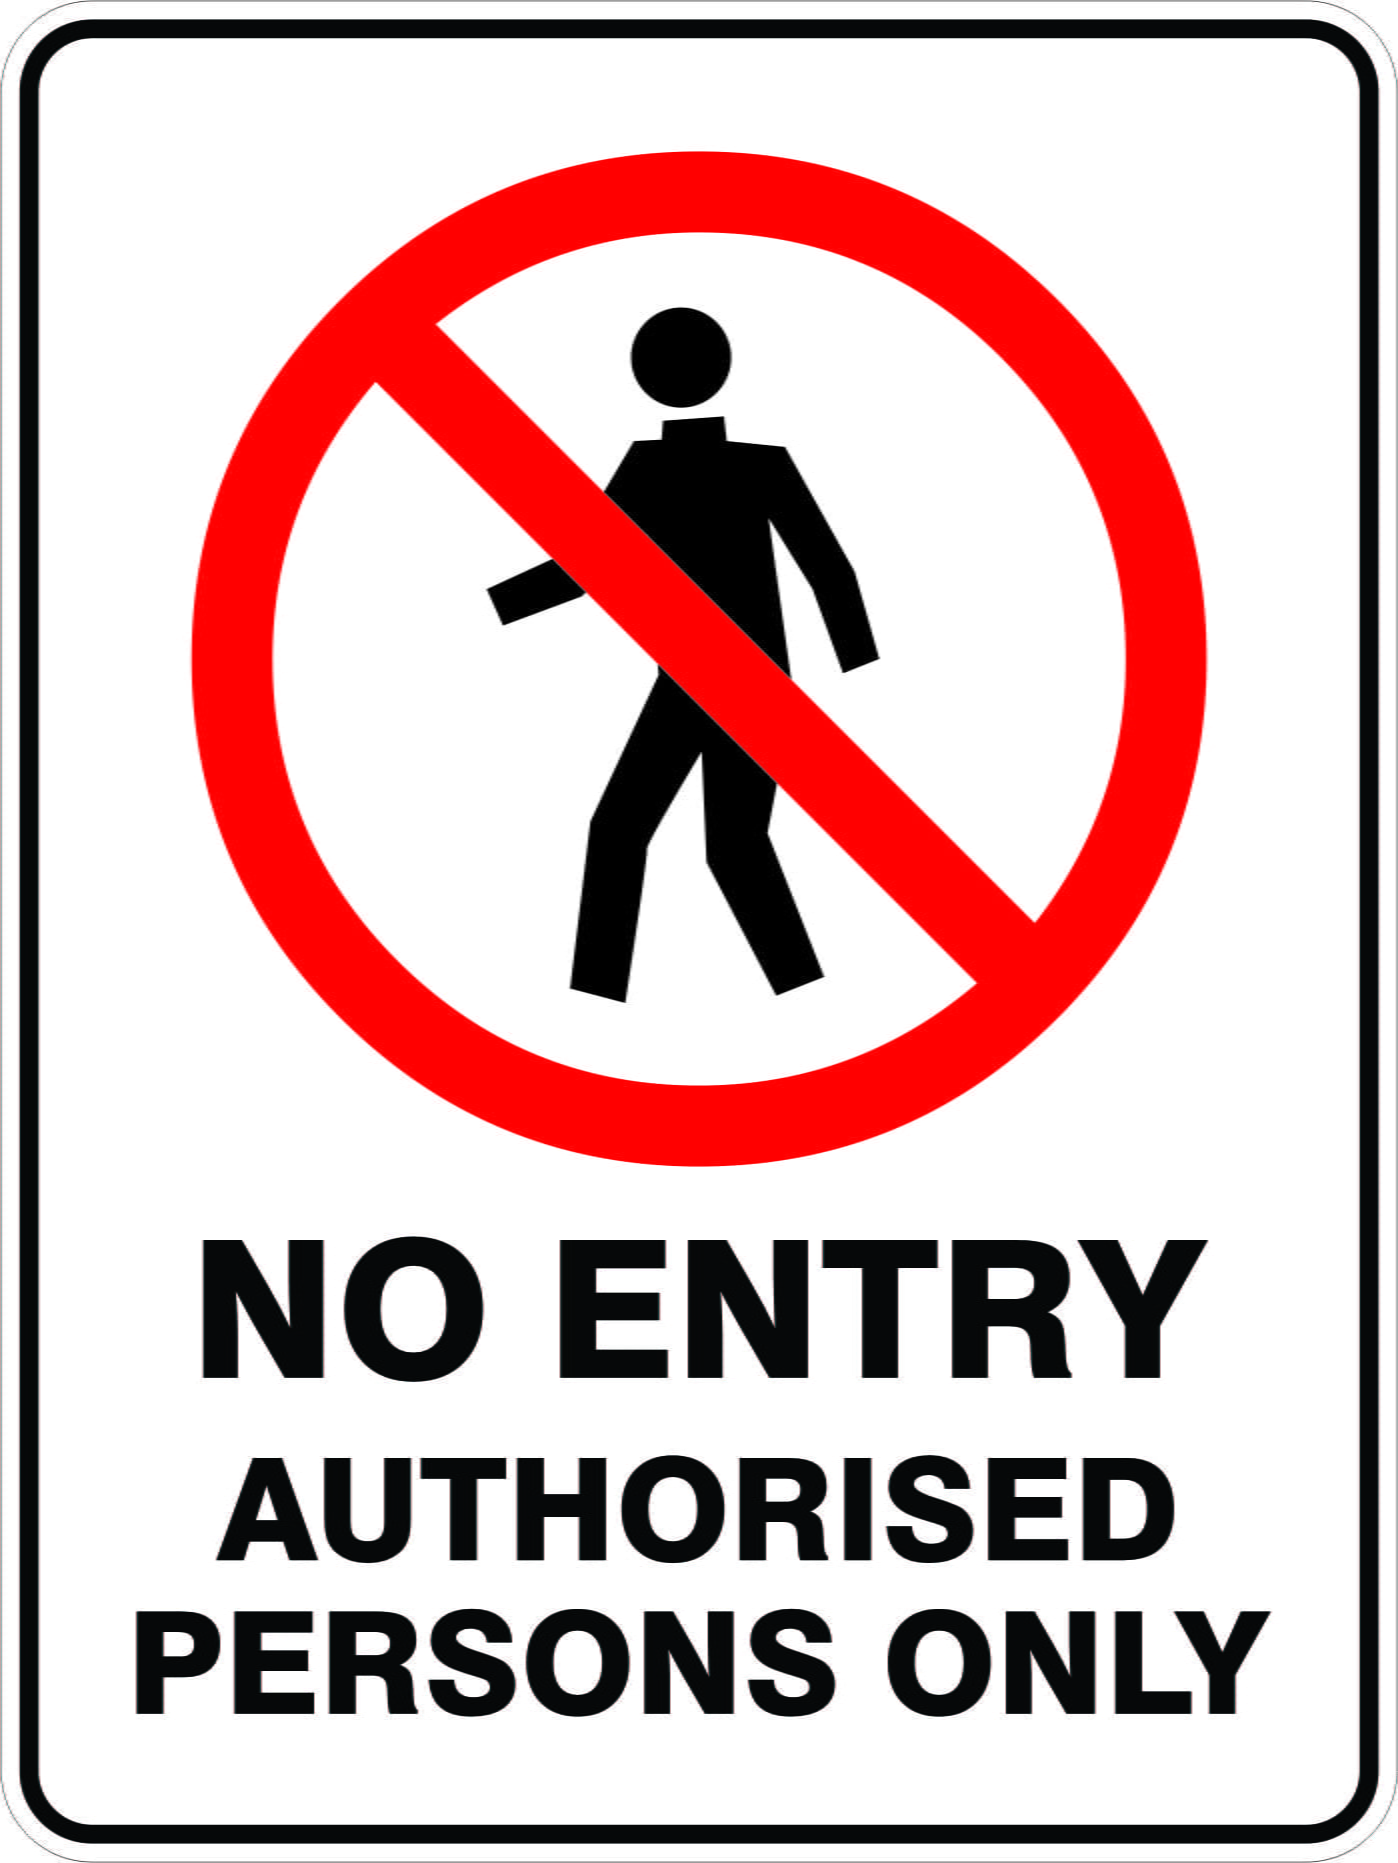 NO UNAUTHORISED ENTRY METAL SAFETY SIGNS PRINTED SIGN